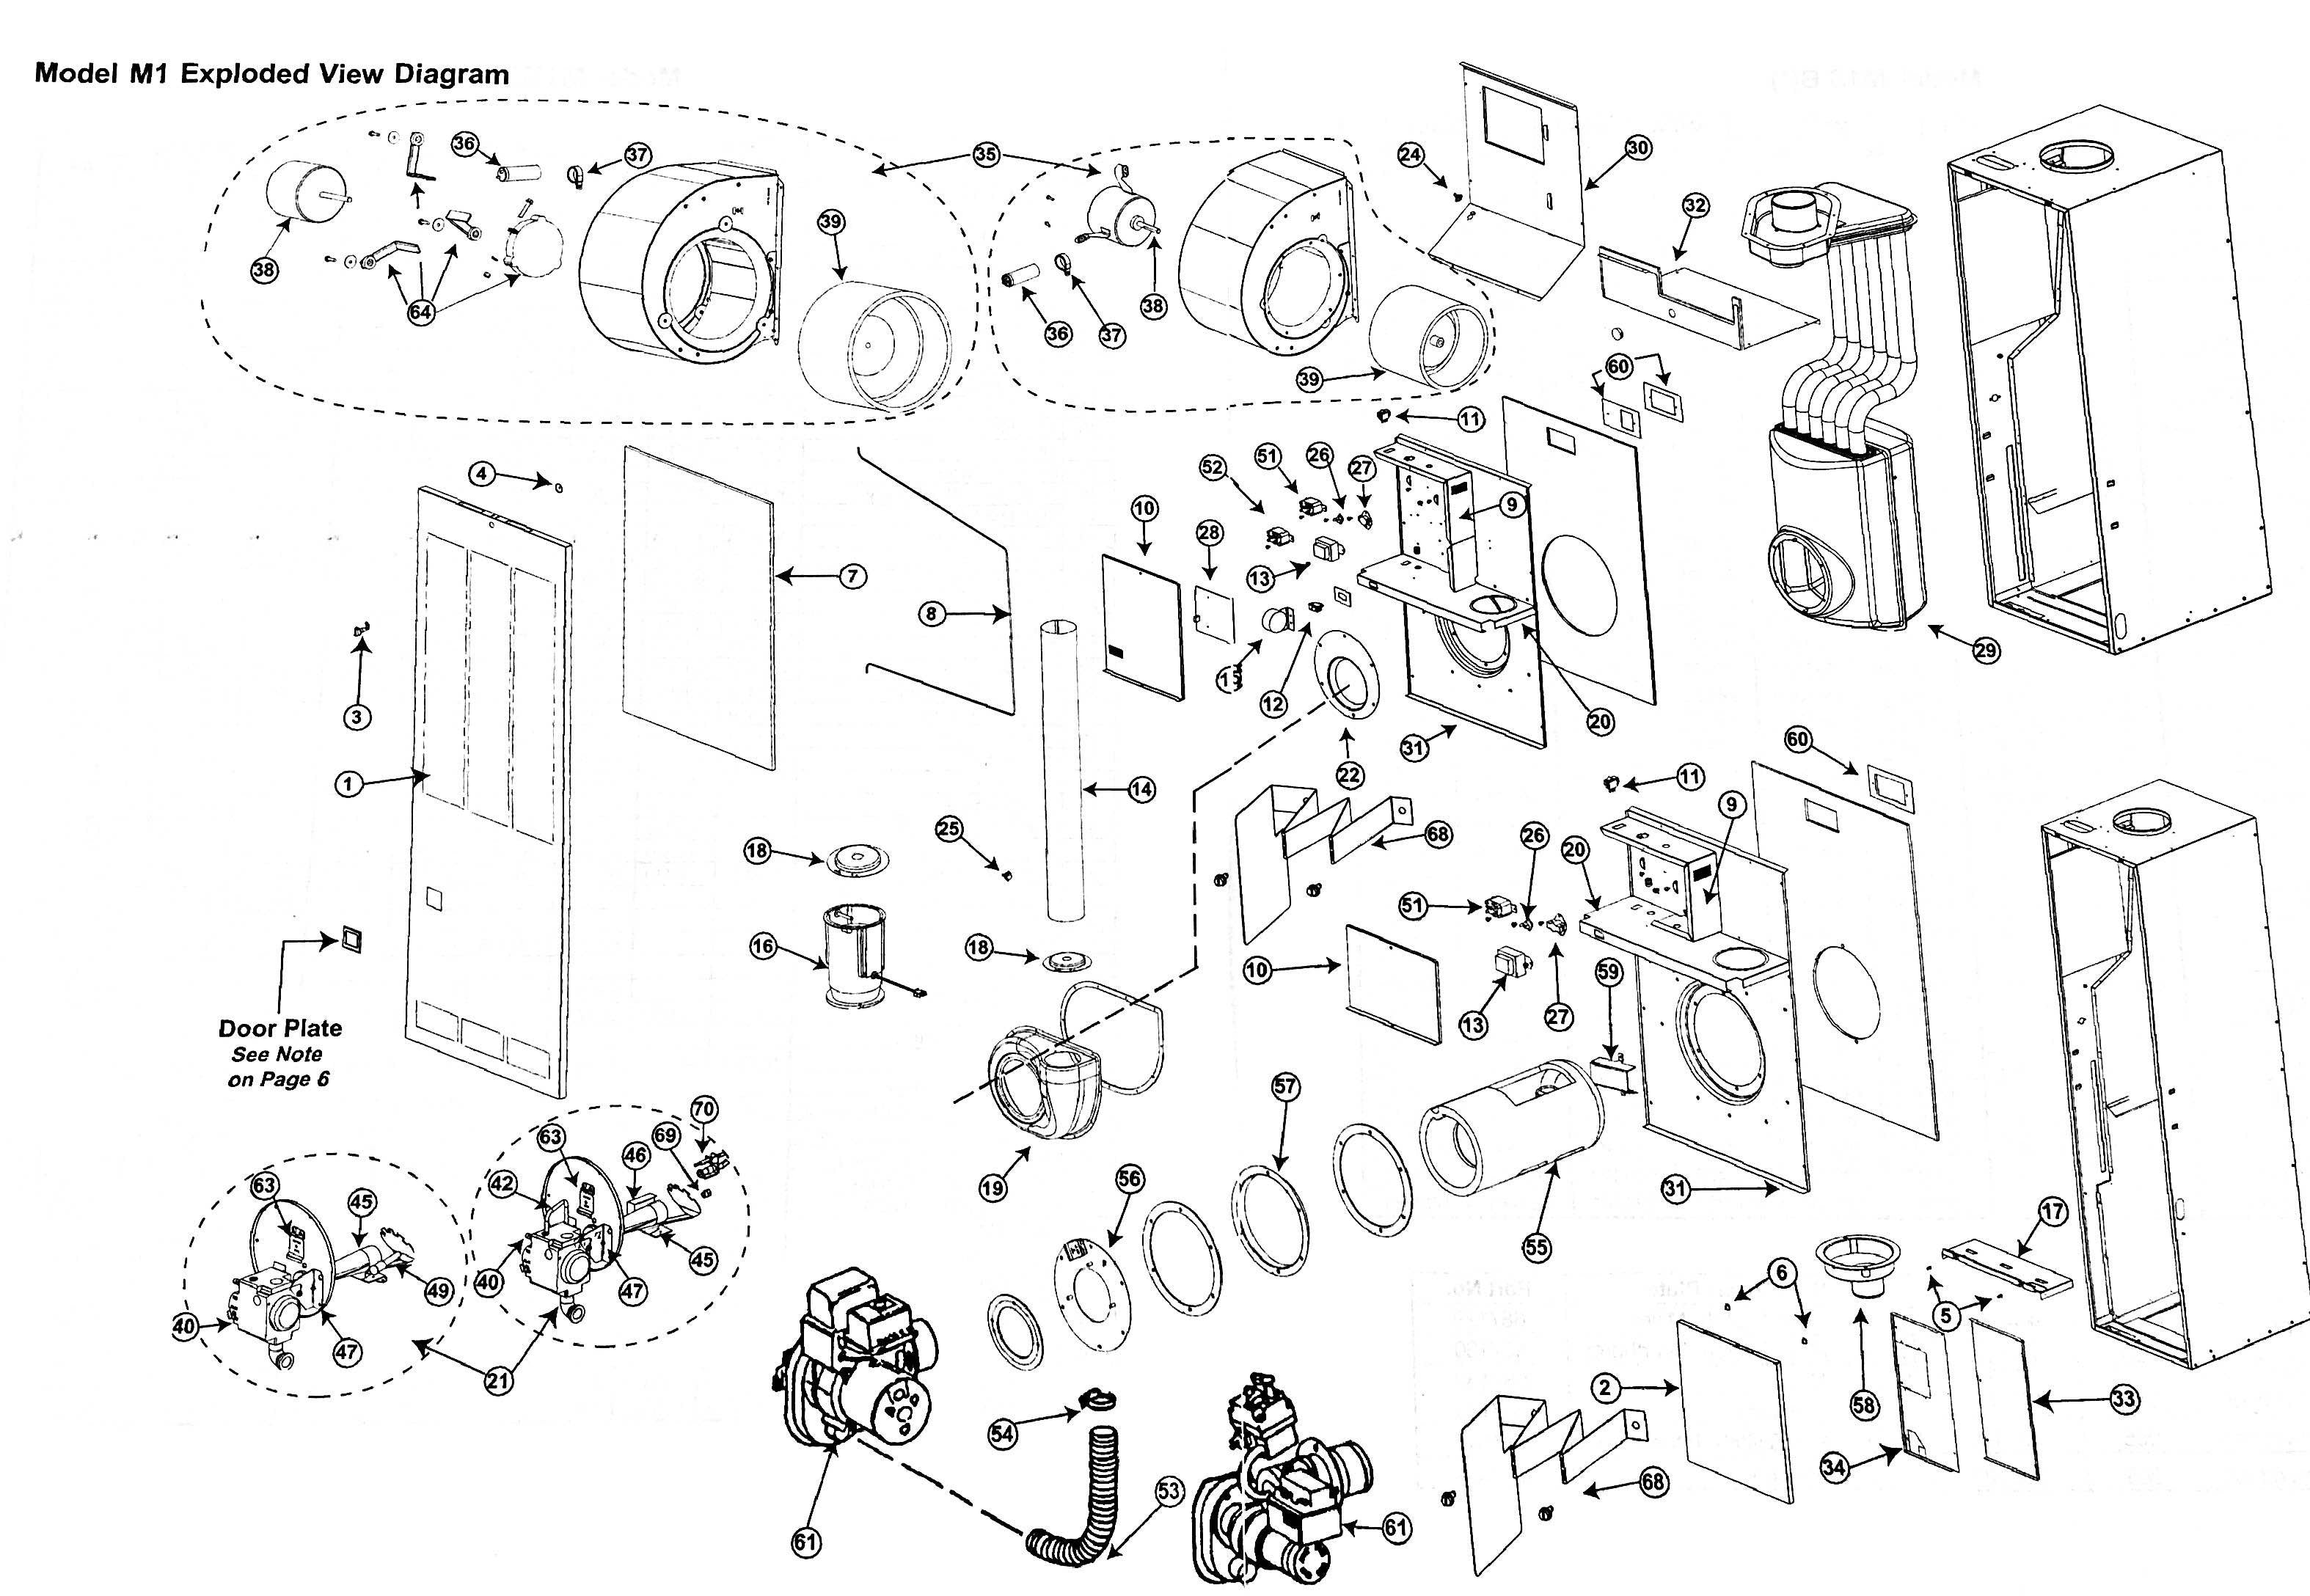 M1Diagram_cf1e7af1 13c5 4c72 b1d3 cbe5b50775cc coleman heater wiring diagram dolgular com DGAA090BDTA Parts at bayanpartner.co